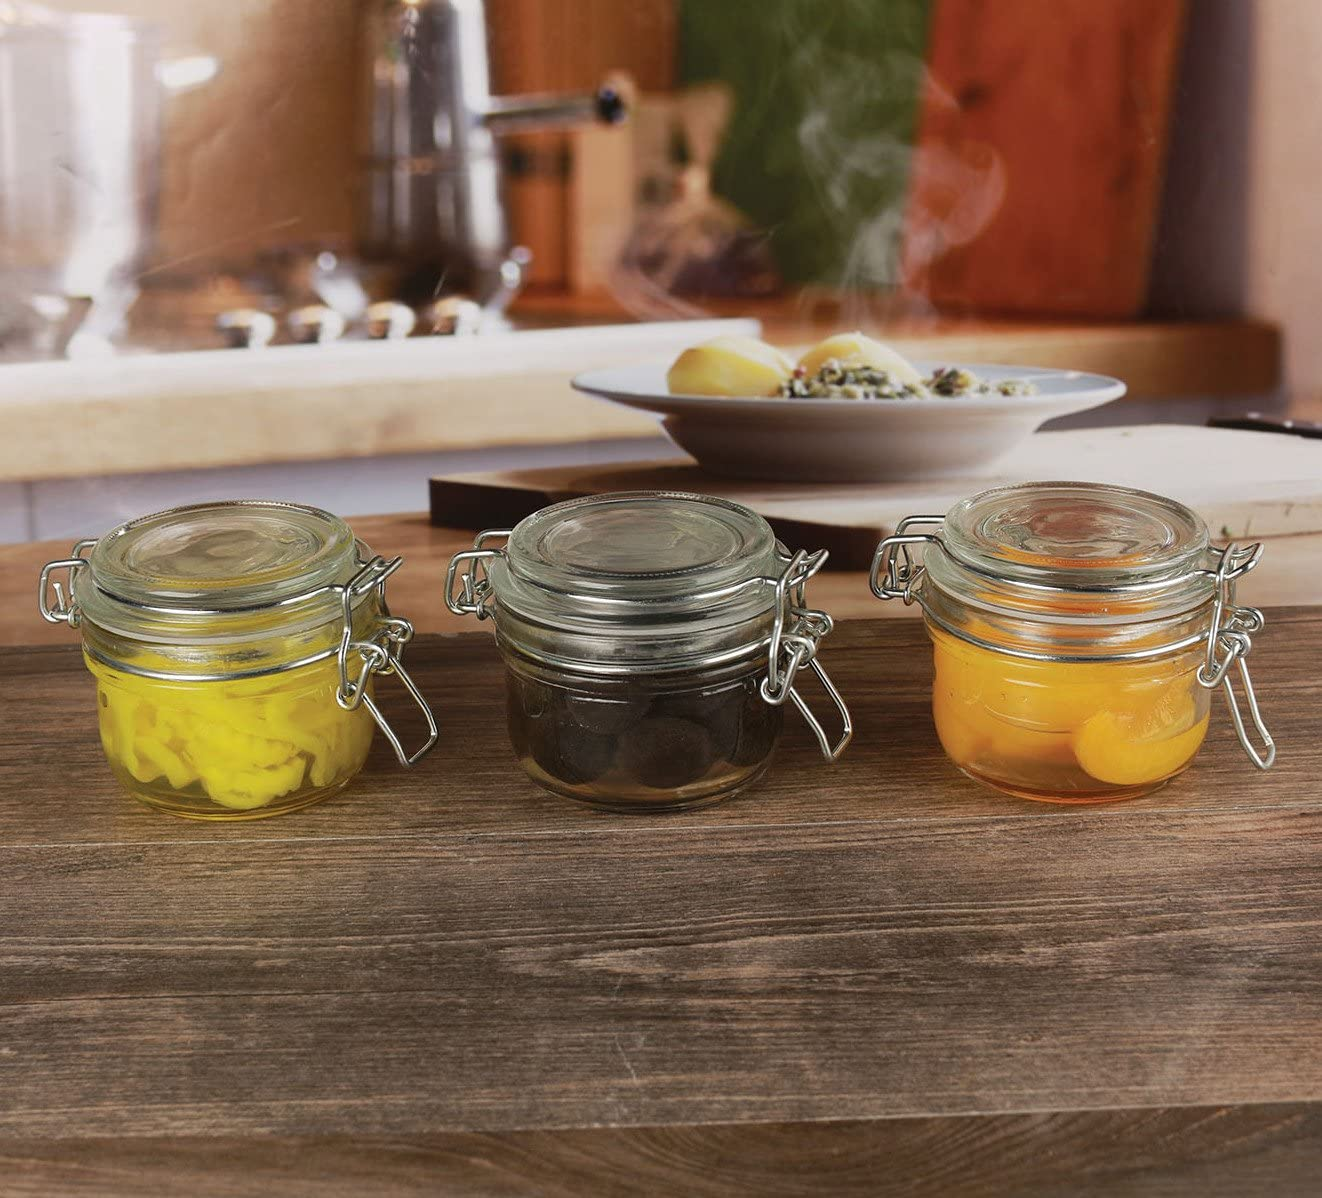 Circleware Glass Spice Jar with Swing Top Hermetic Airtight Locking Lid, Set of 3, Kitchen Food Preserving Storage Containers for Coffee, Sugar, Tea, and Himalayan Seasoning, 5.81 oz, Clear